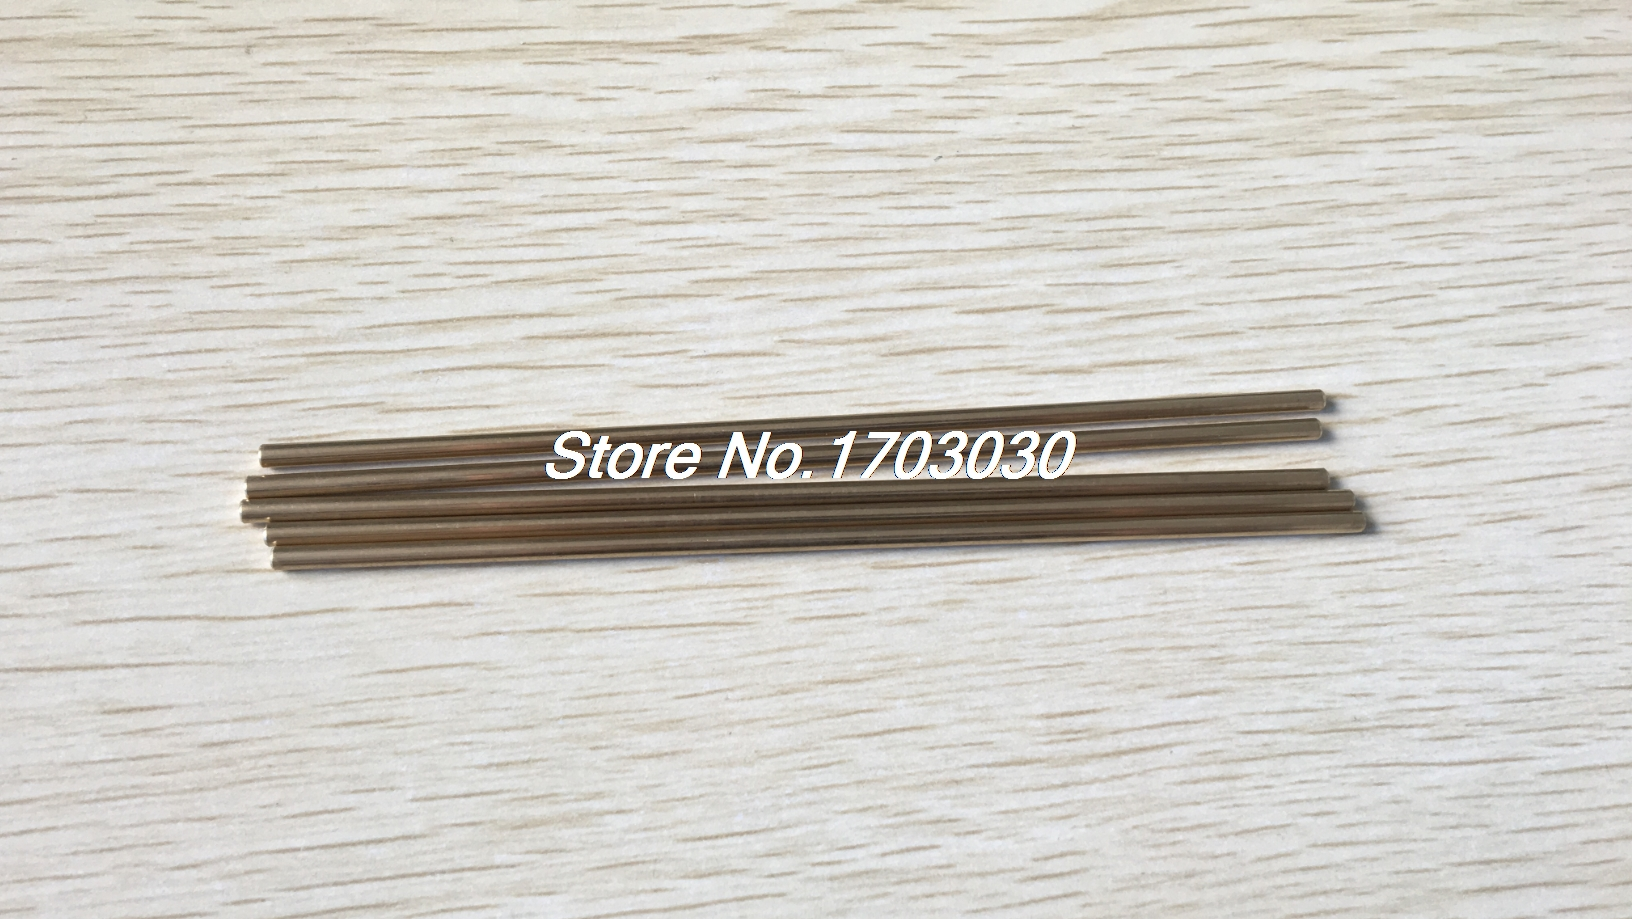 15 Pcs Car Model Toy DIY Brass Rod Axles Drill Rod Bar 3mm x 160mm  накидка на рюкзак tatonka rain flap 40 55 л m красный m